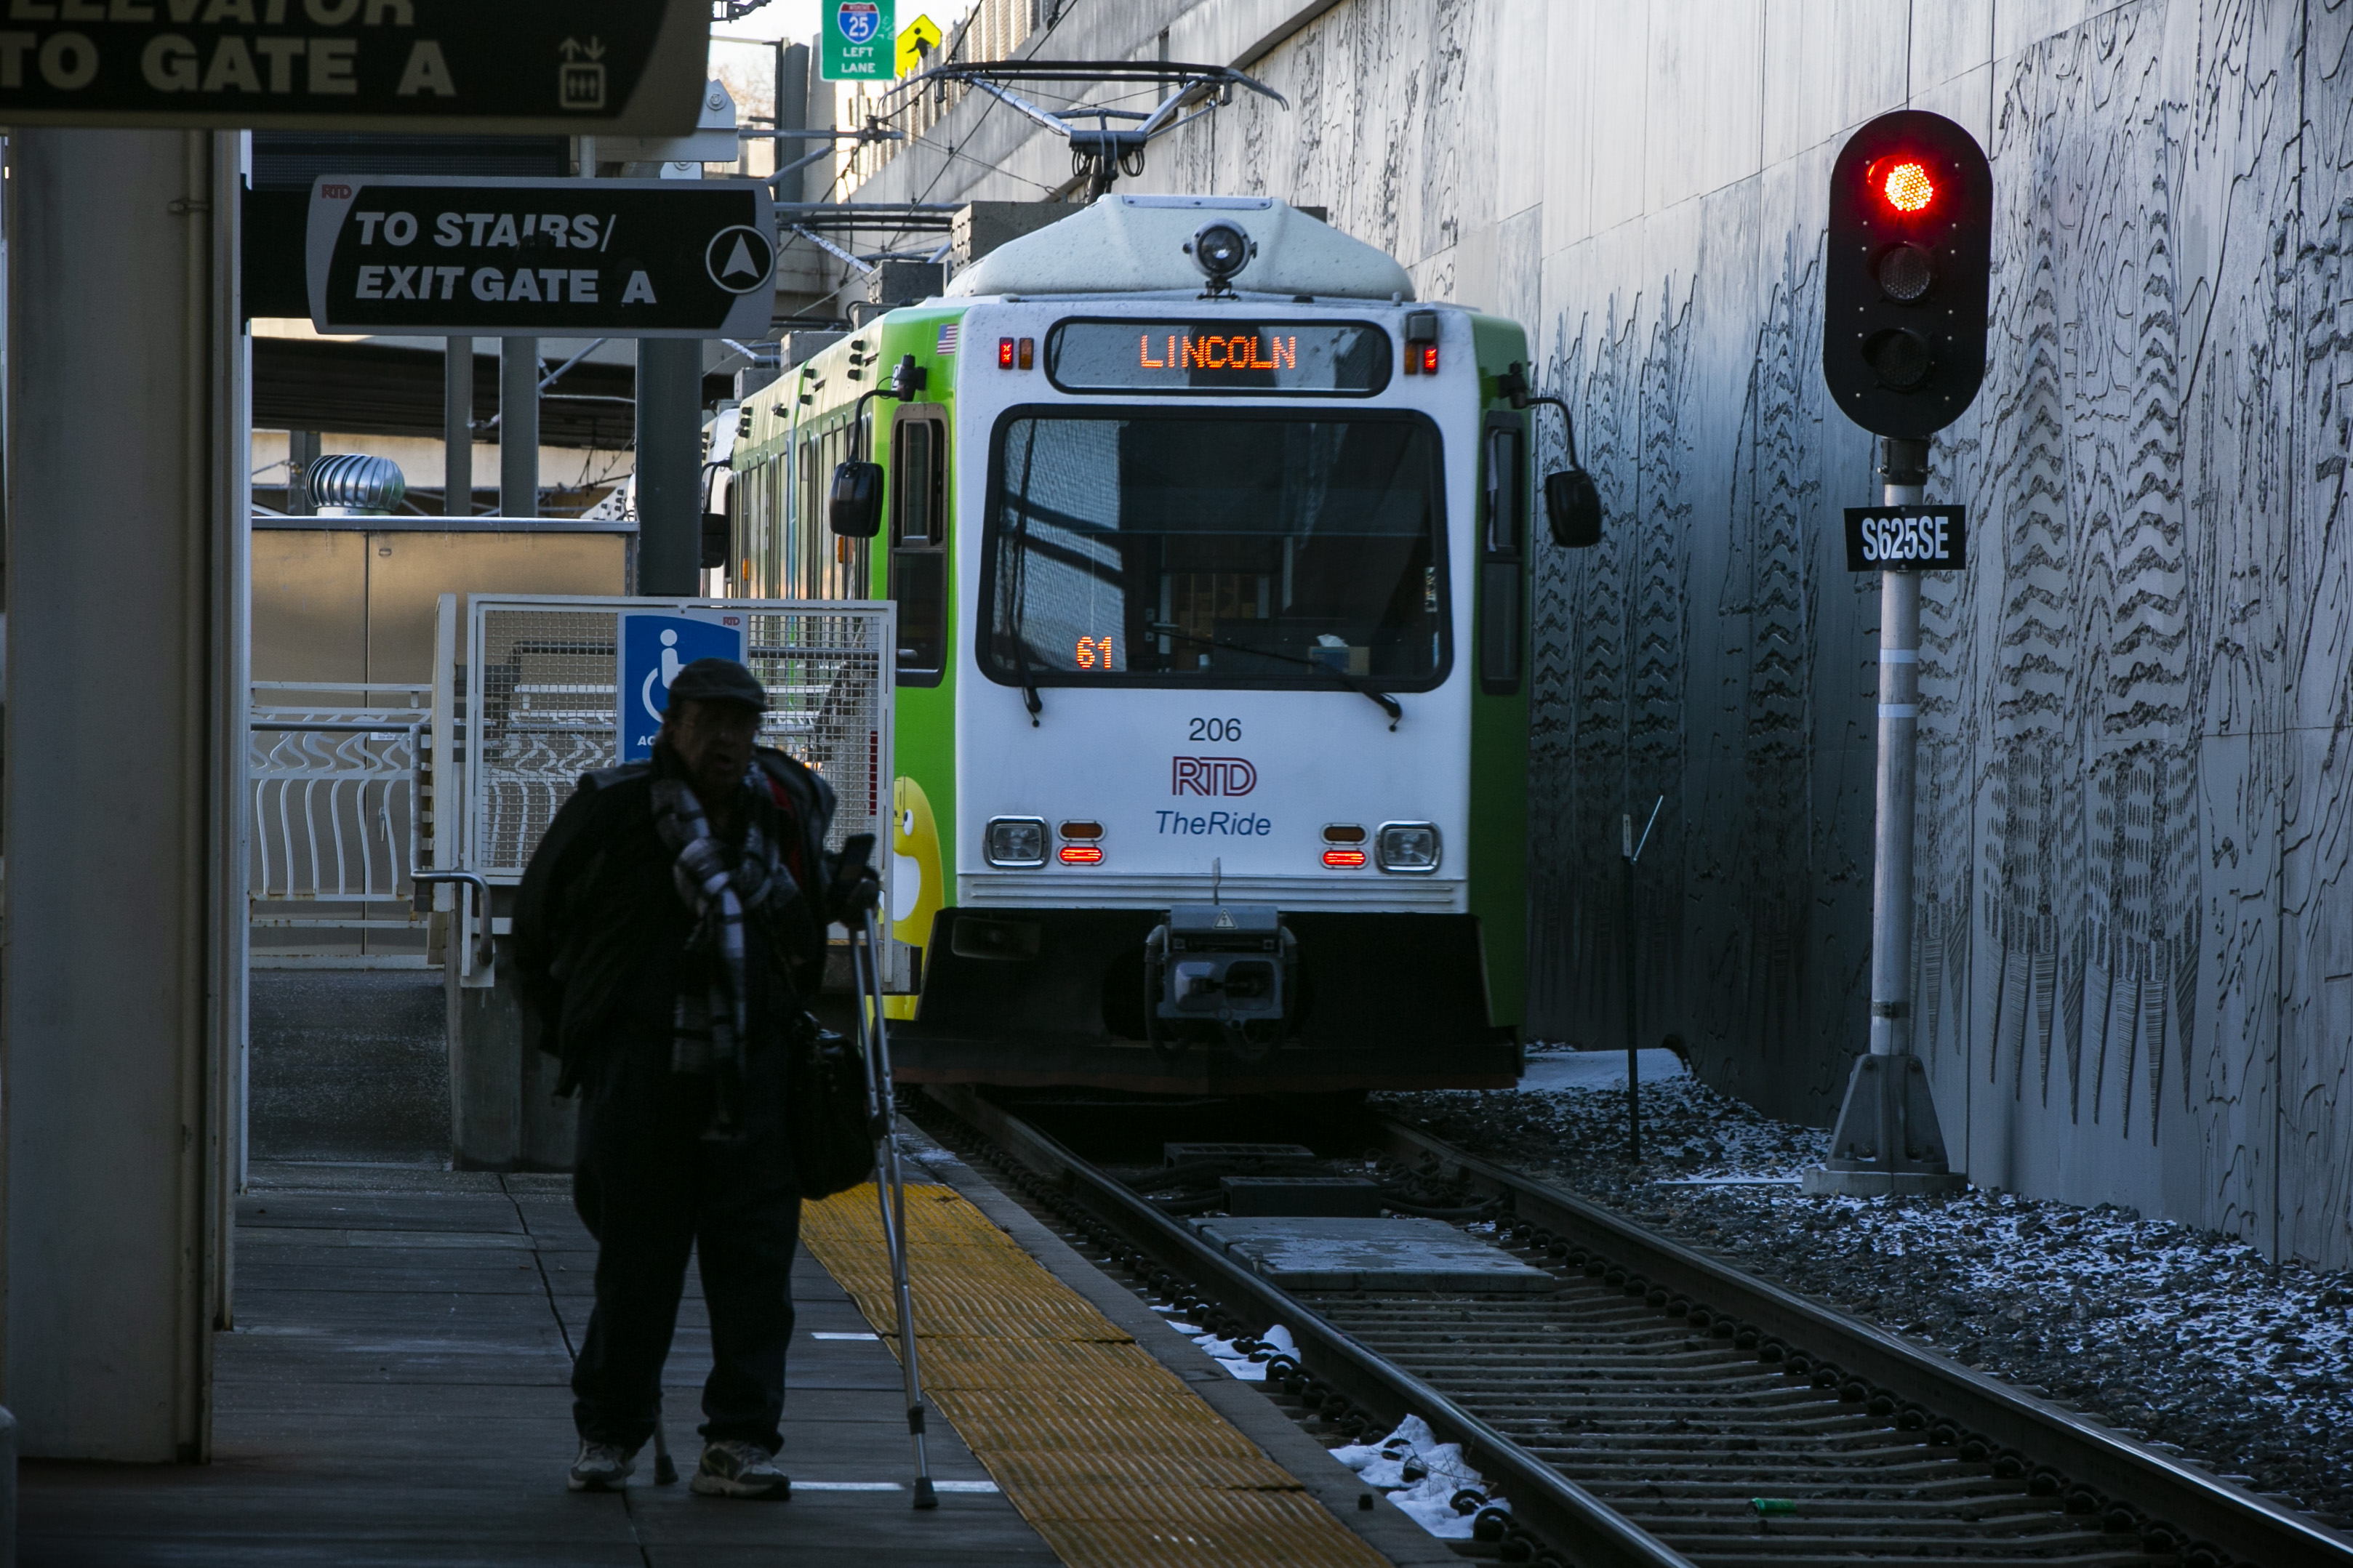 <p>An RTD light rail train passes a traffic signal as it leaves the Louisiana-Pearl station in south Denver on Tuesday, Jan. 16, 2018. This train did not violate the red signal; it was green when the operator began to leave the station.</p>